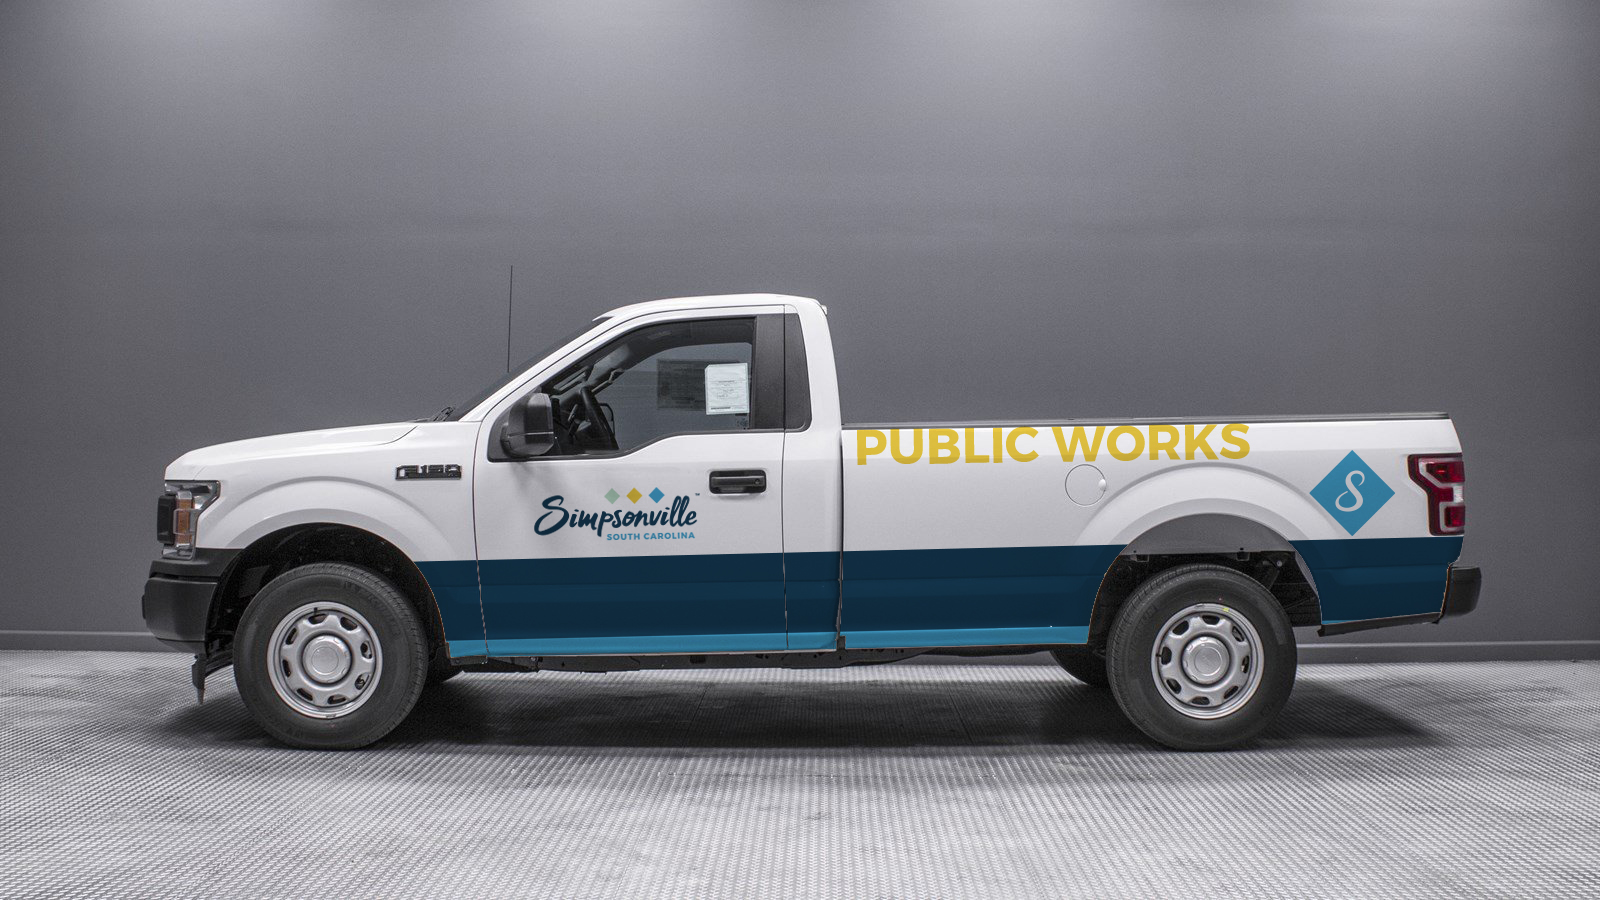 Proposed new branding for City of Simpsonville vehicles